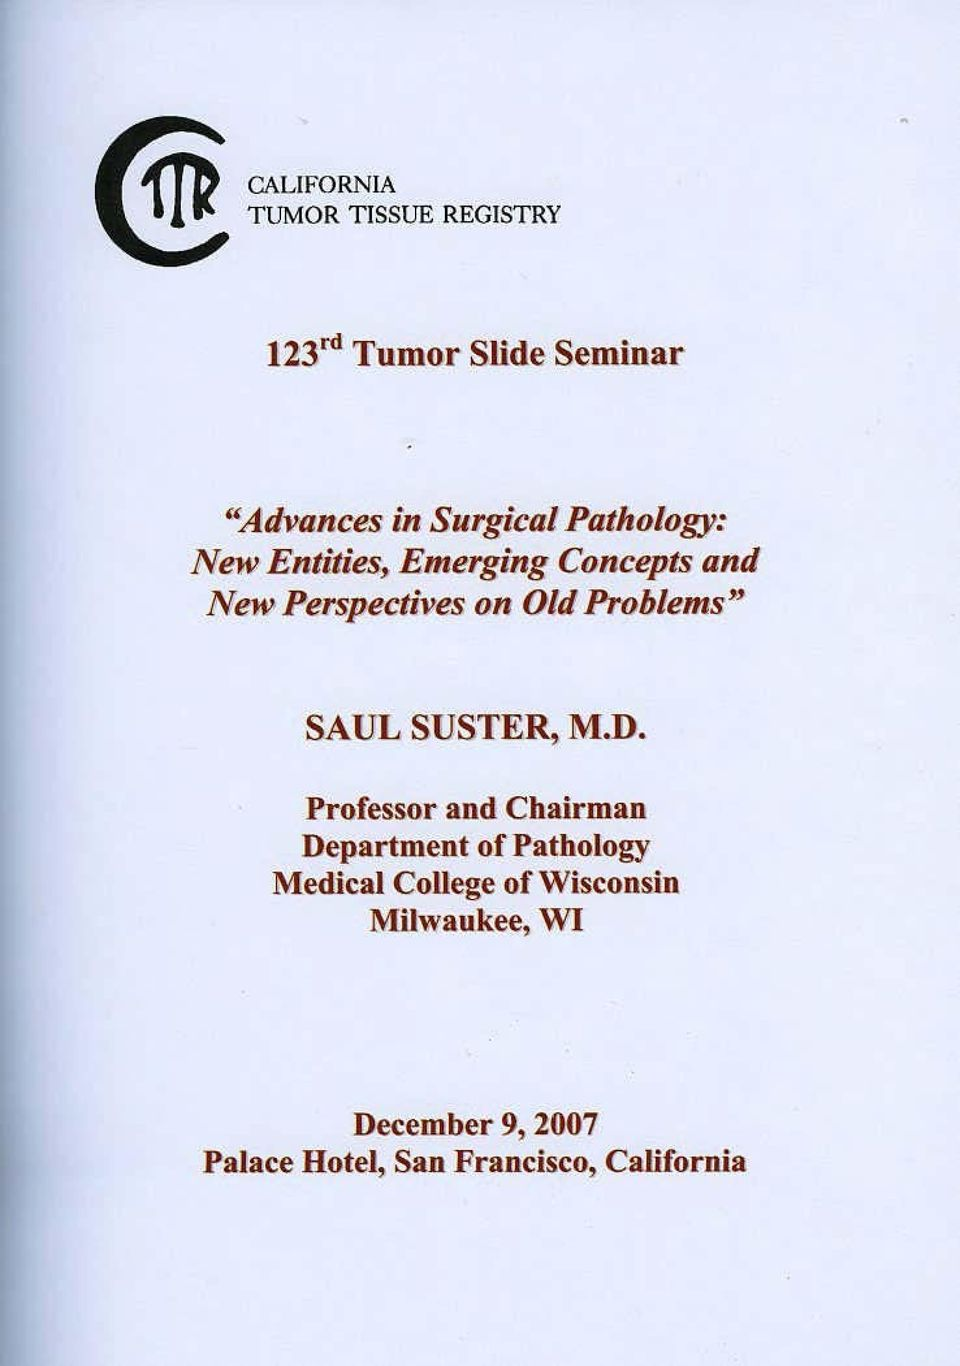 "Em erging Concepts and New Perspectives o n Old Problems""' SAUL SUSTER, M.D."